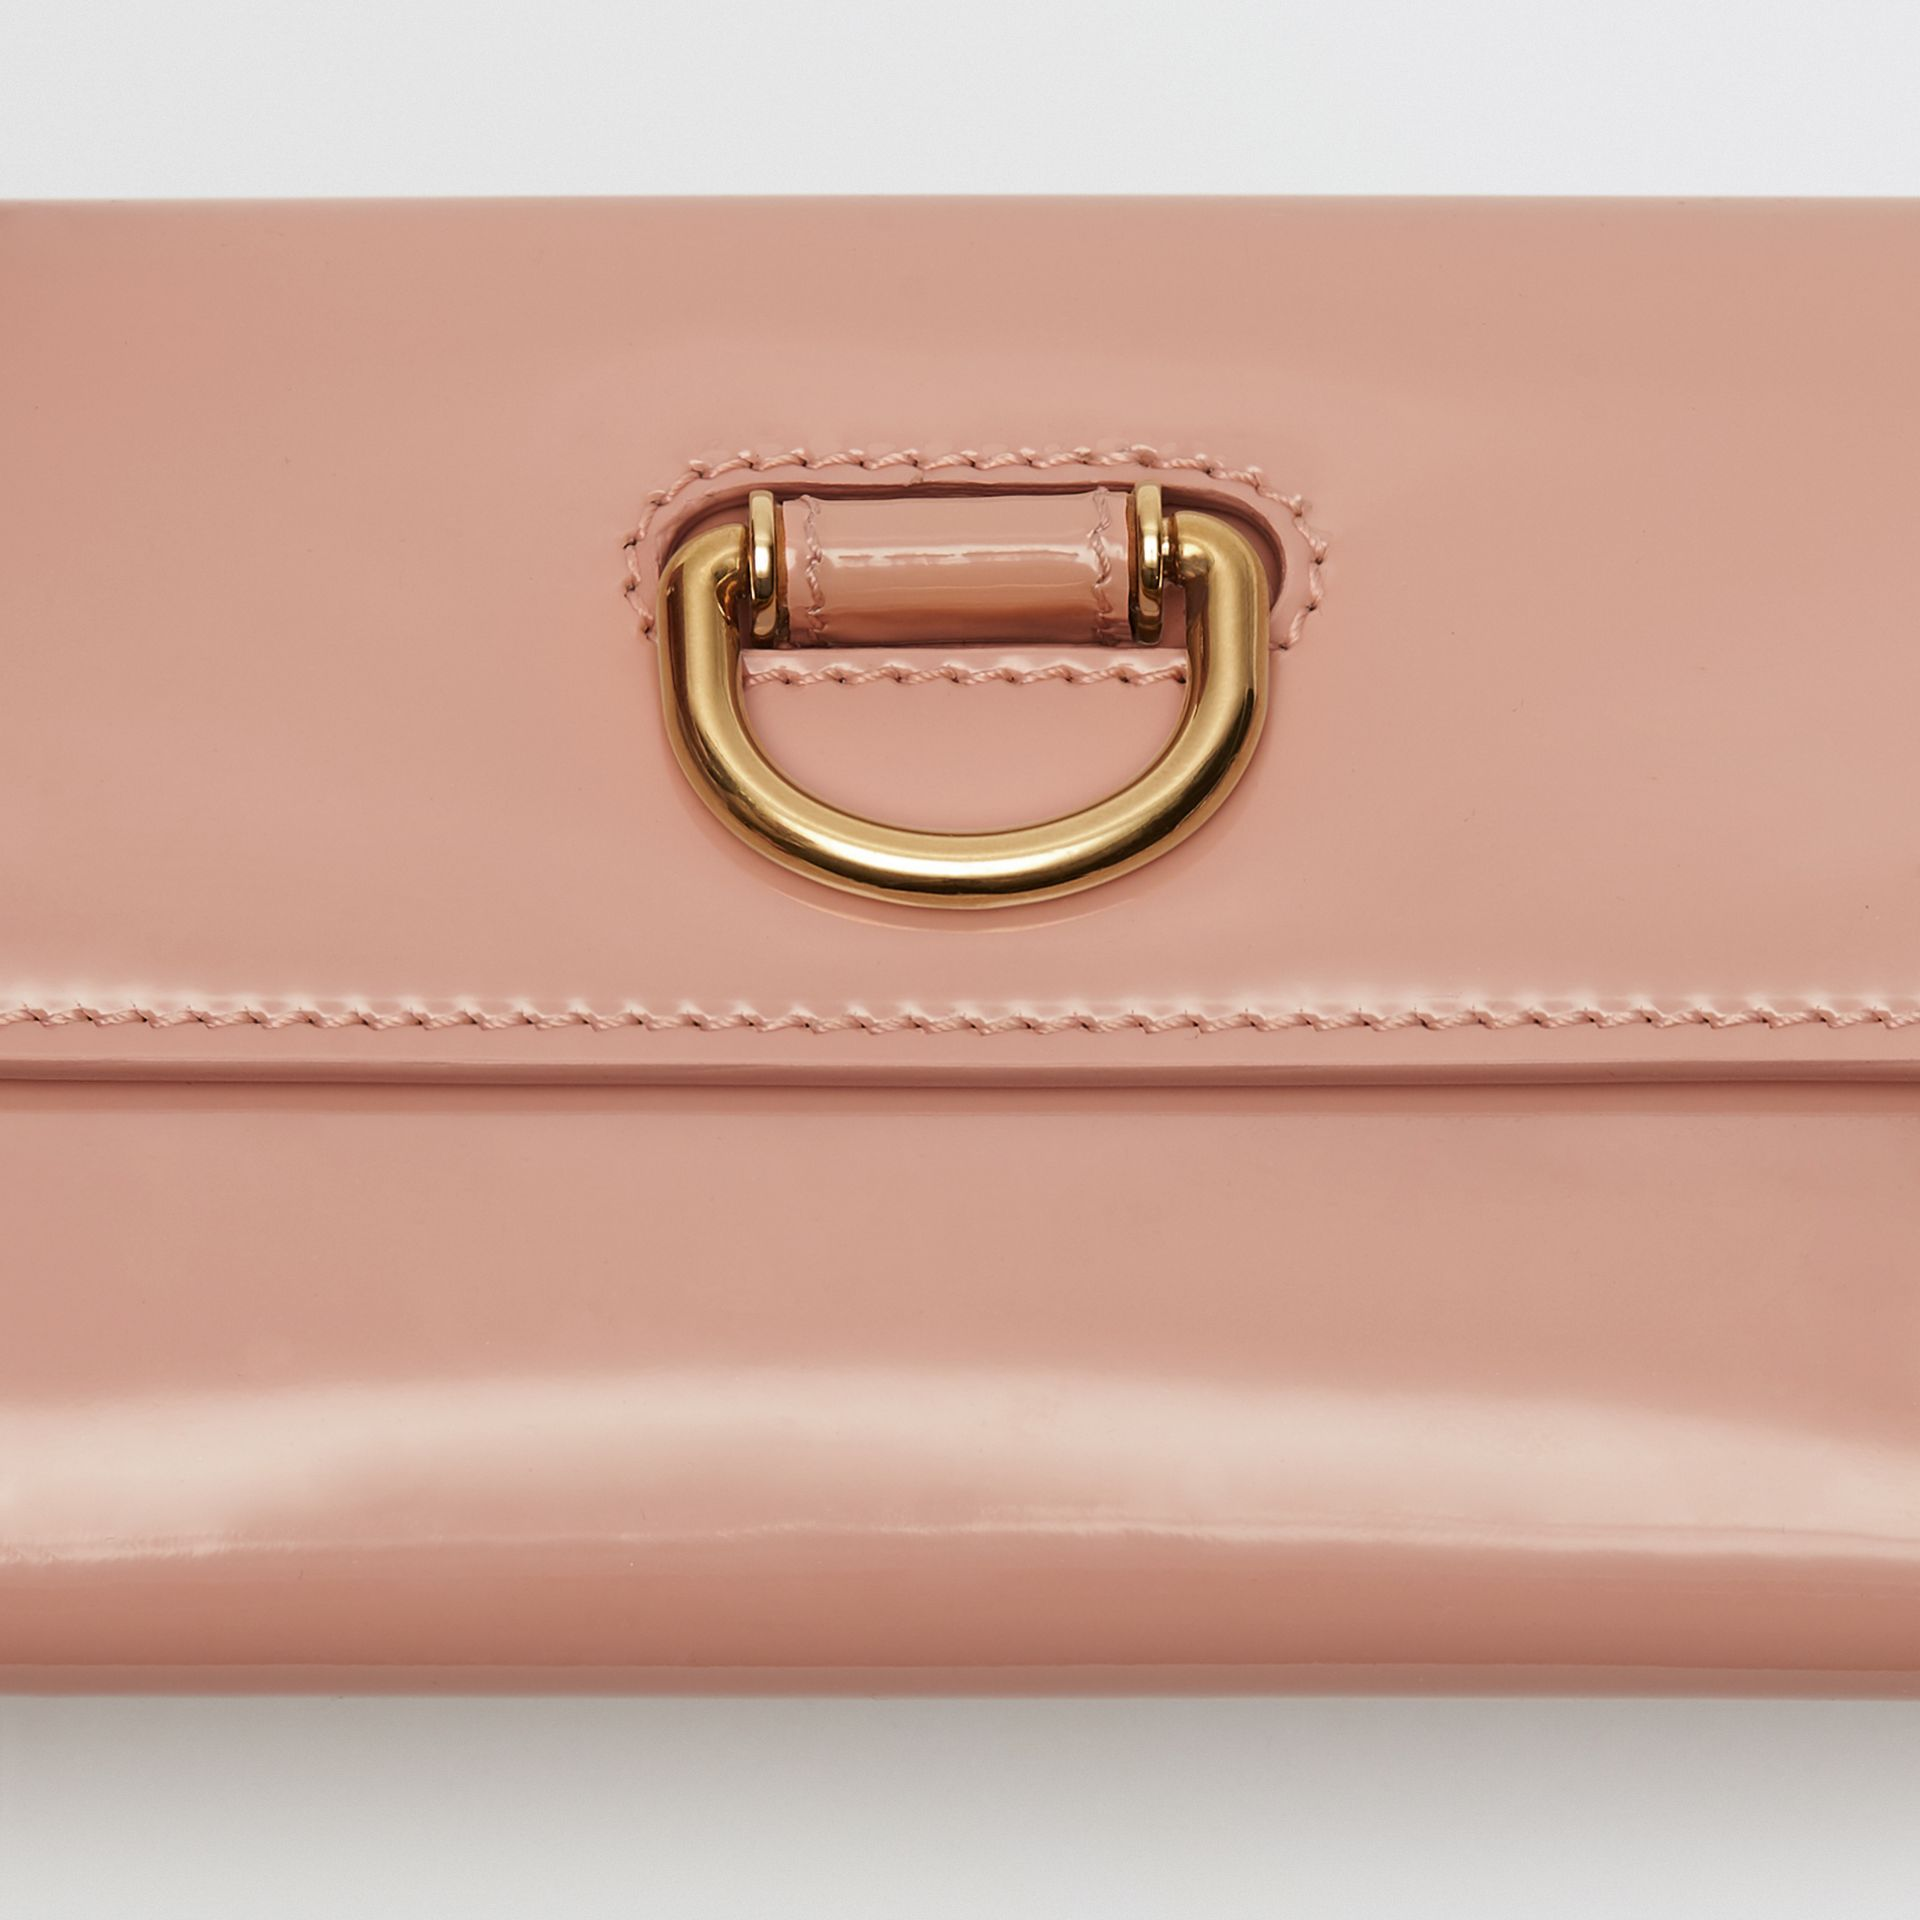 D-ring Patent Leather Continental Wallet in Pale Fawn Pink - Women | Burberry - gallery image 1